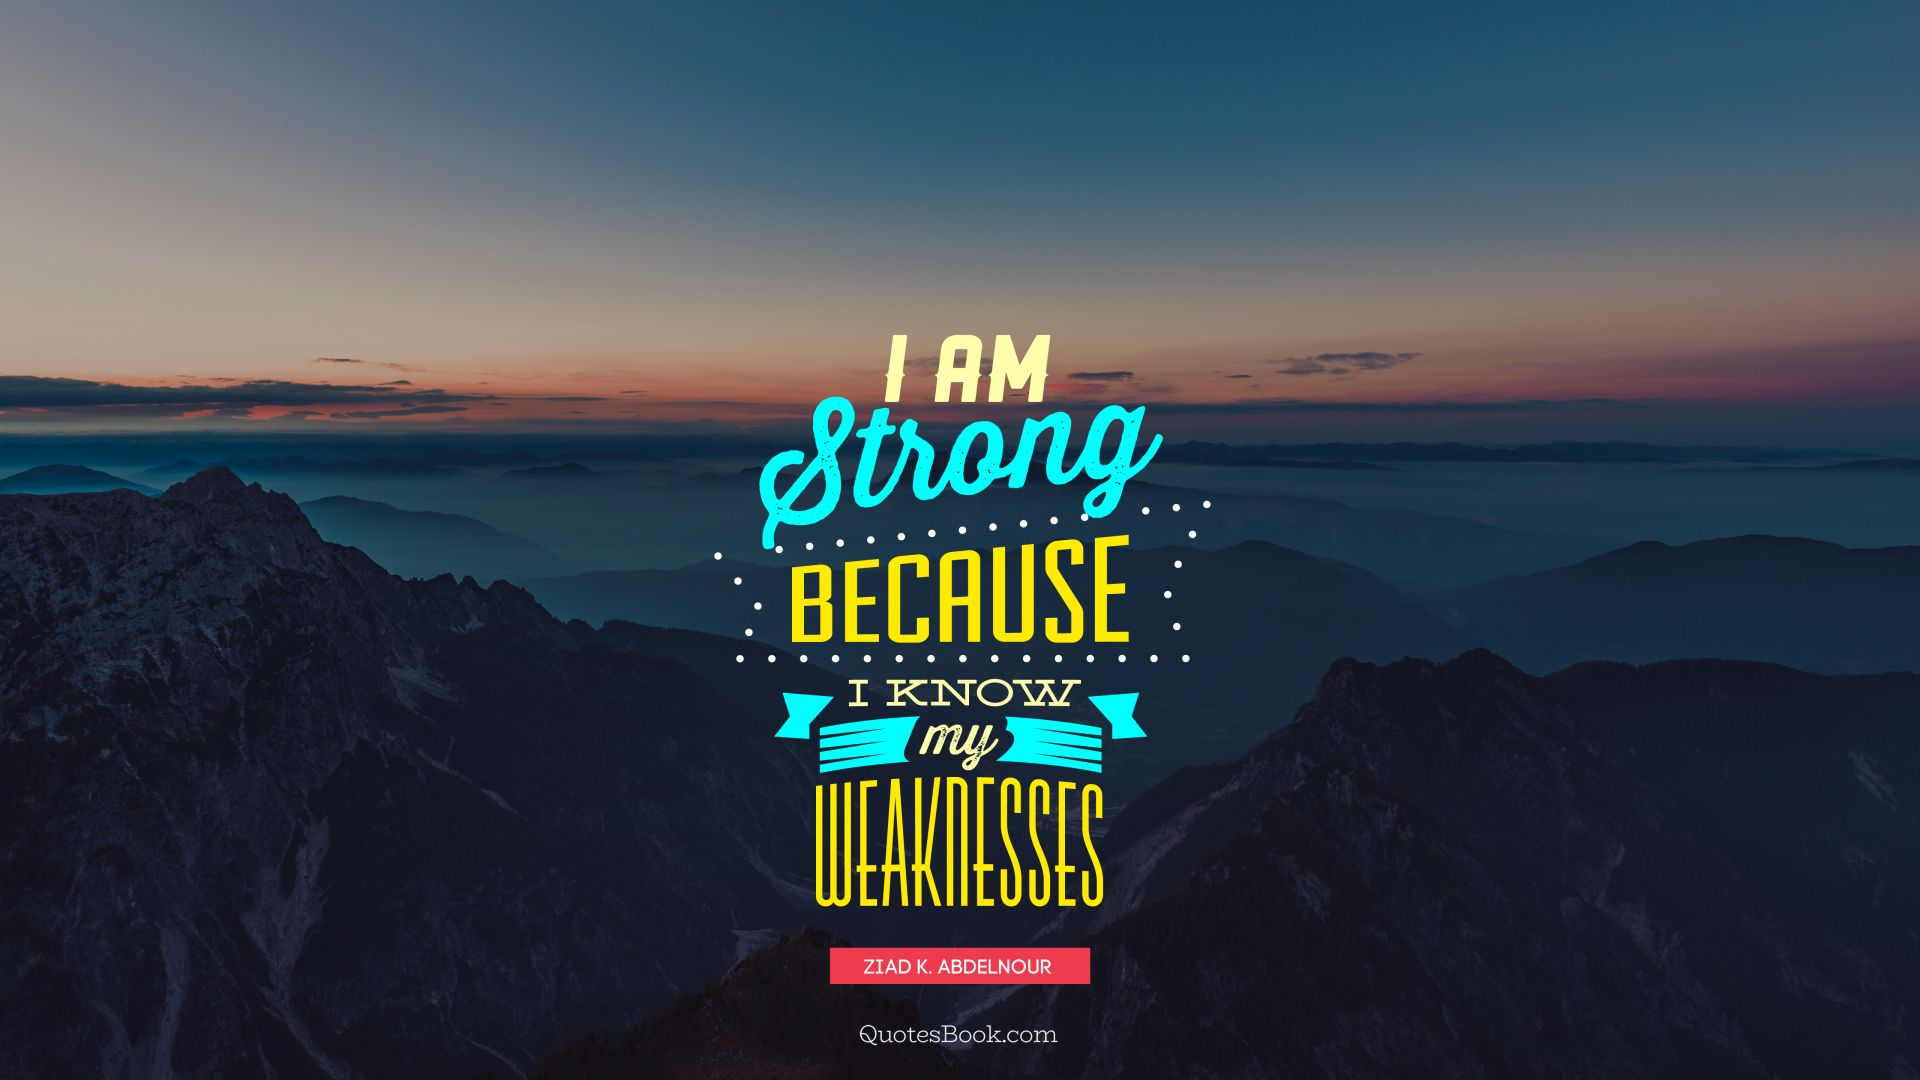 I am strong because I know my weaknesses. - Quote by Ziad K. Abdelnour